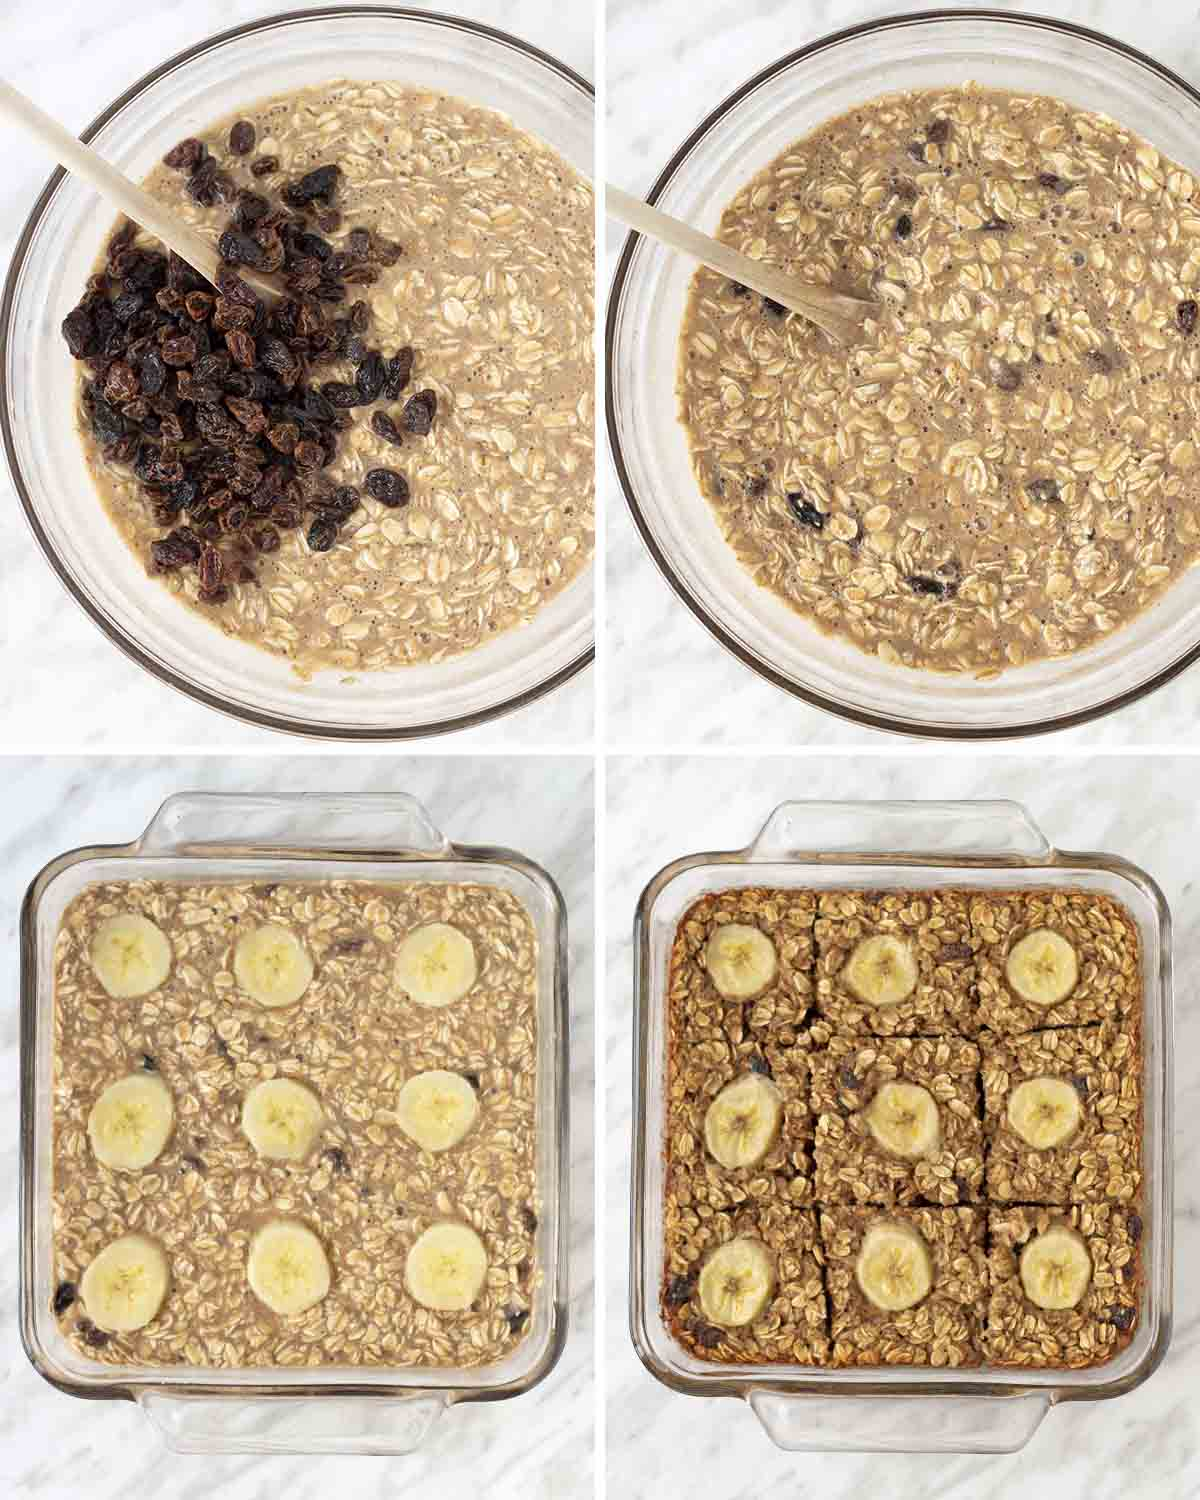 A collage of four images showing the second sequence of steps needed to make baked vegan oatmeal.